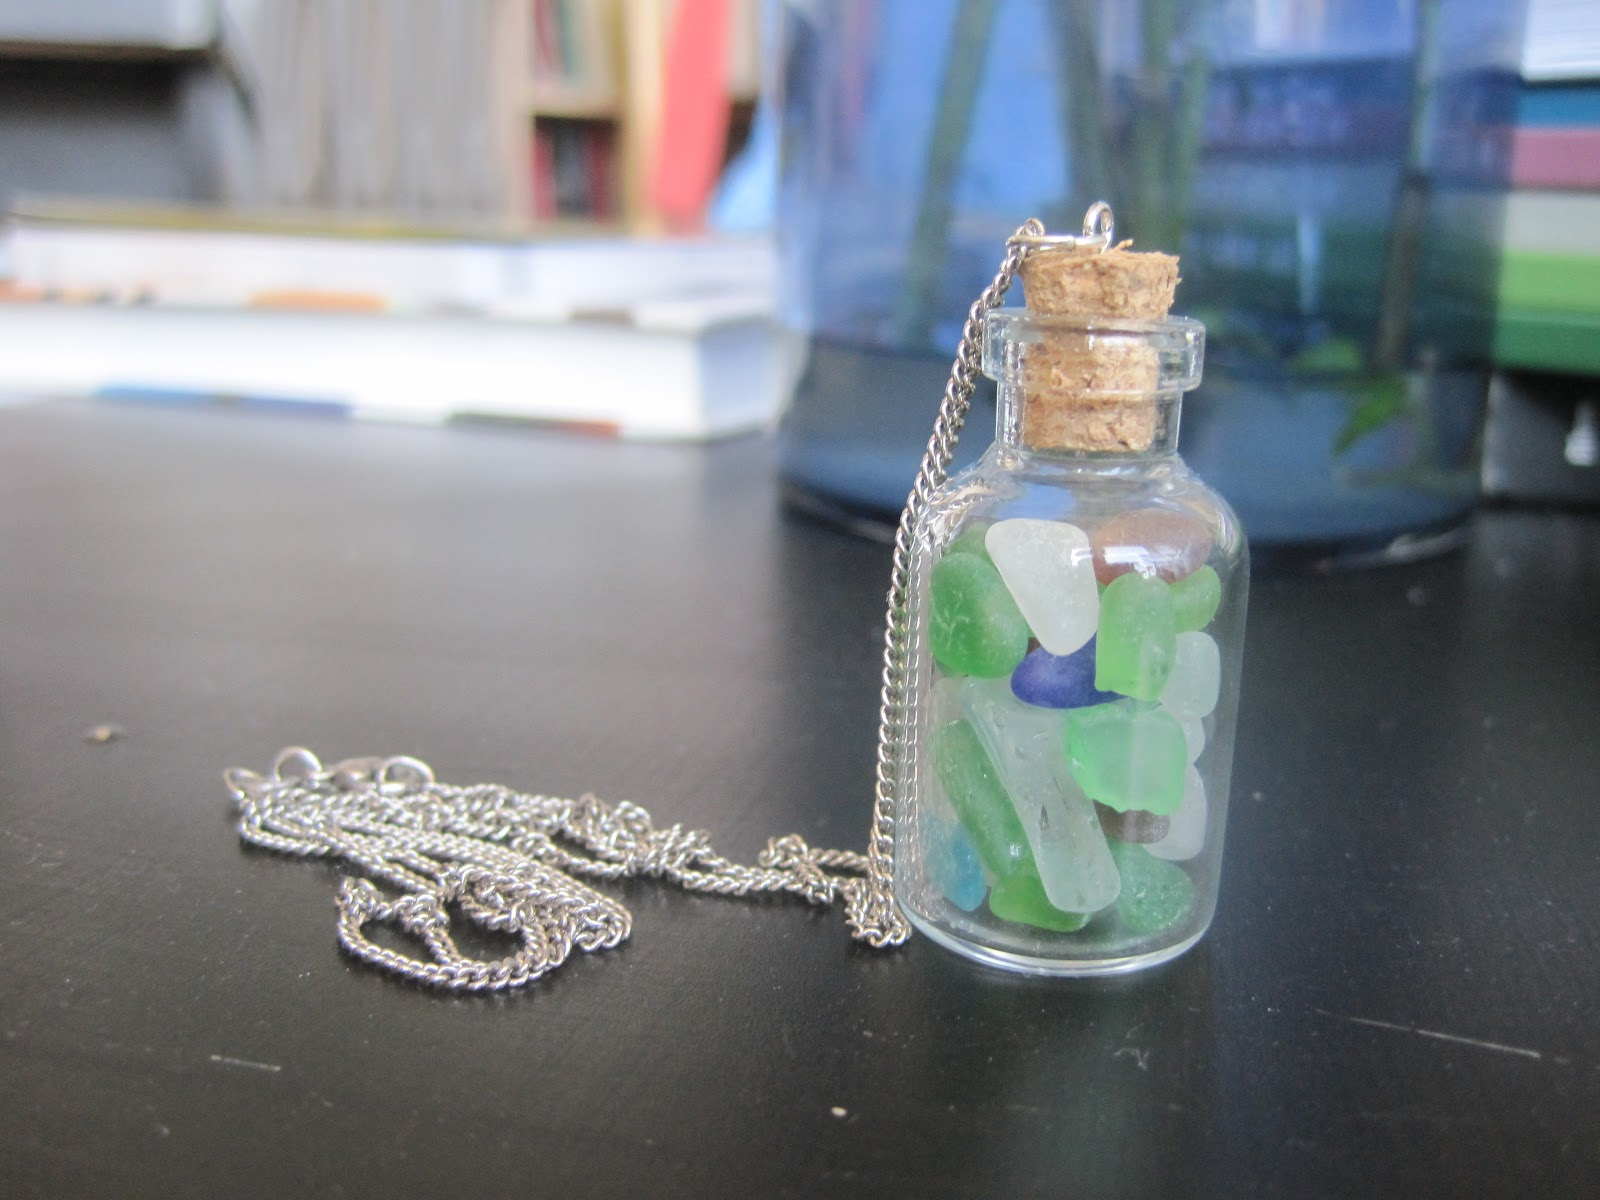 Evelyn's Sewing Projects: Sea glass necklace